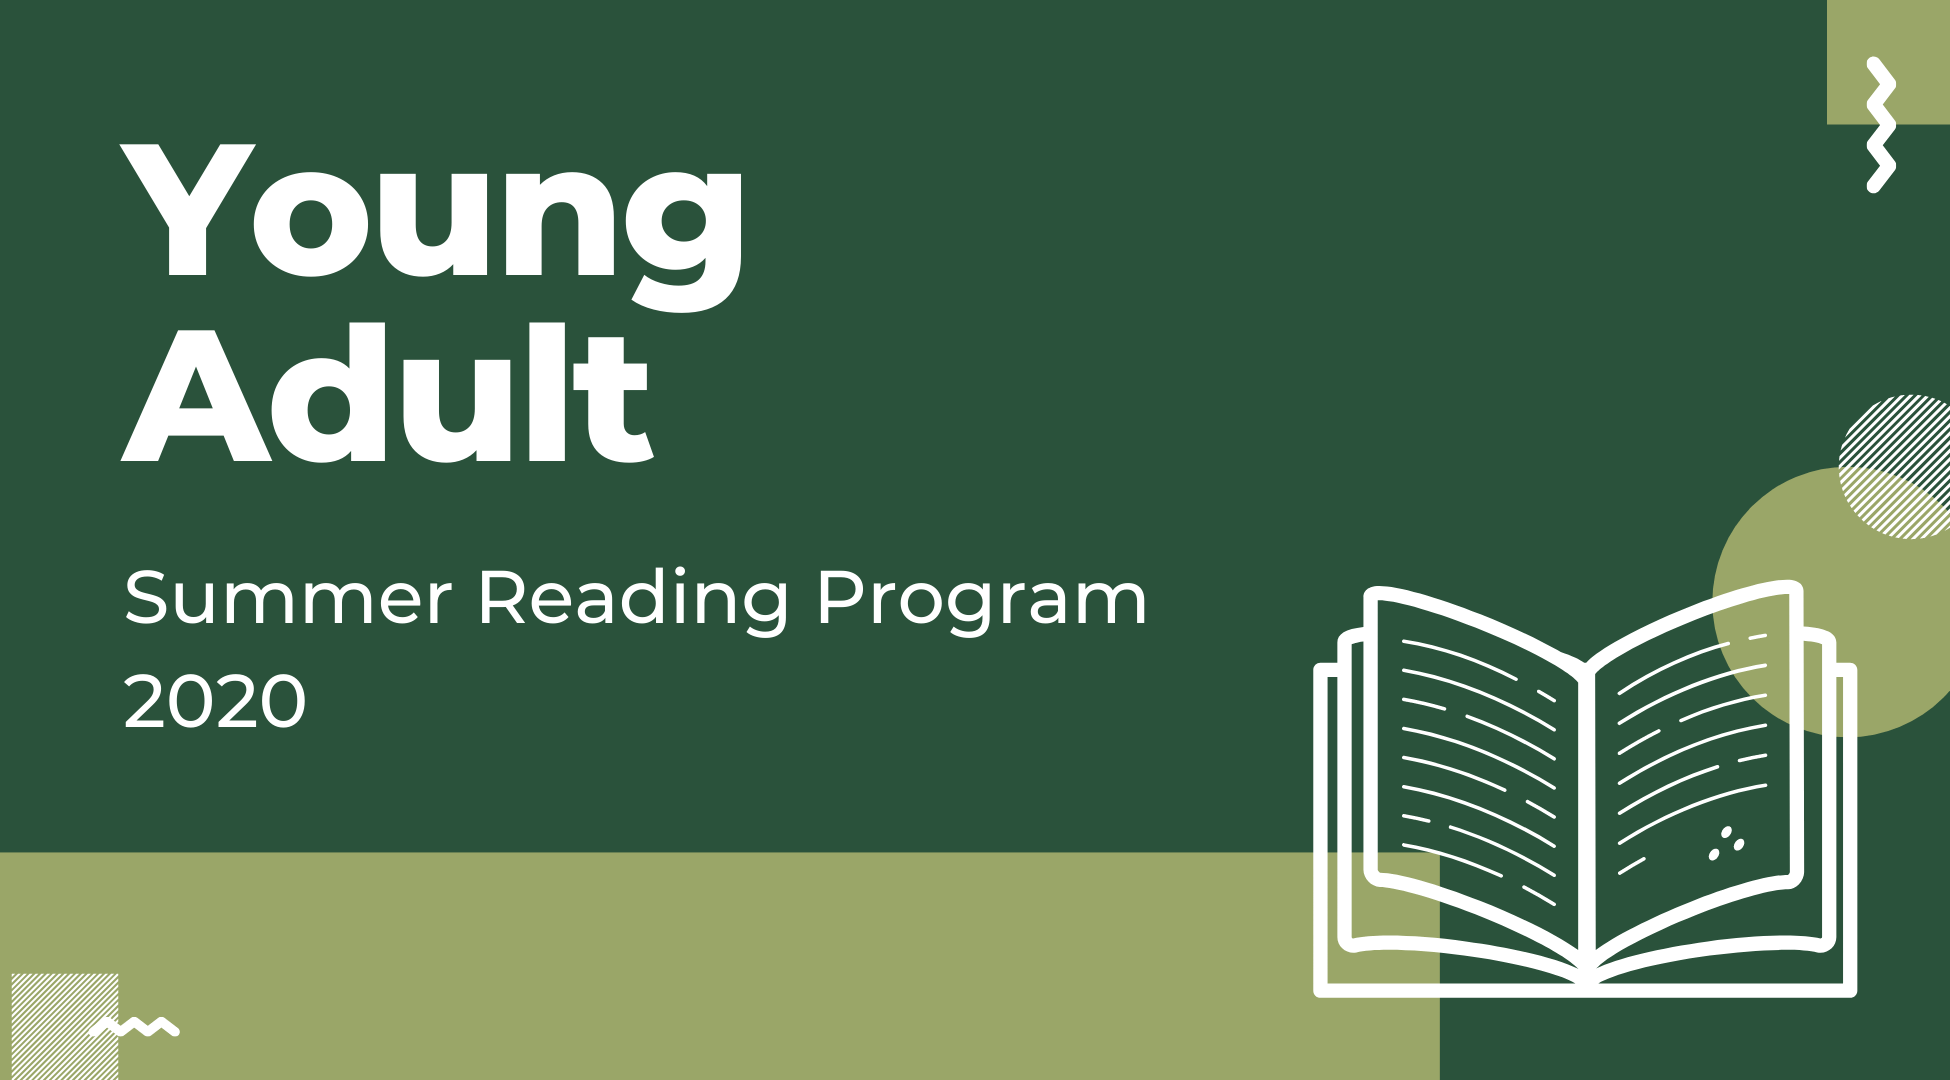 Young Adult Summer Reading Program 2020